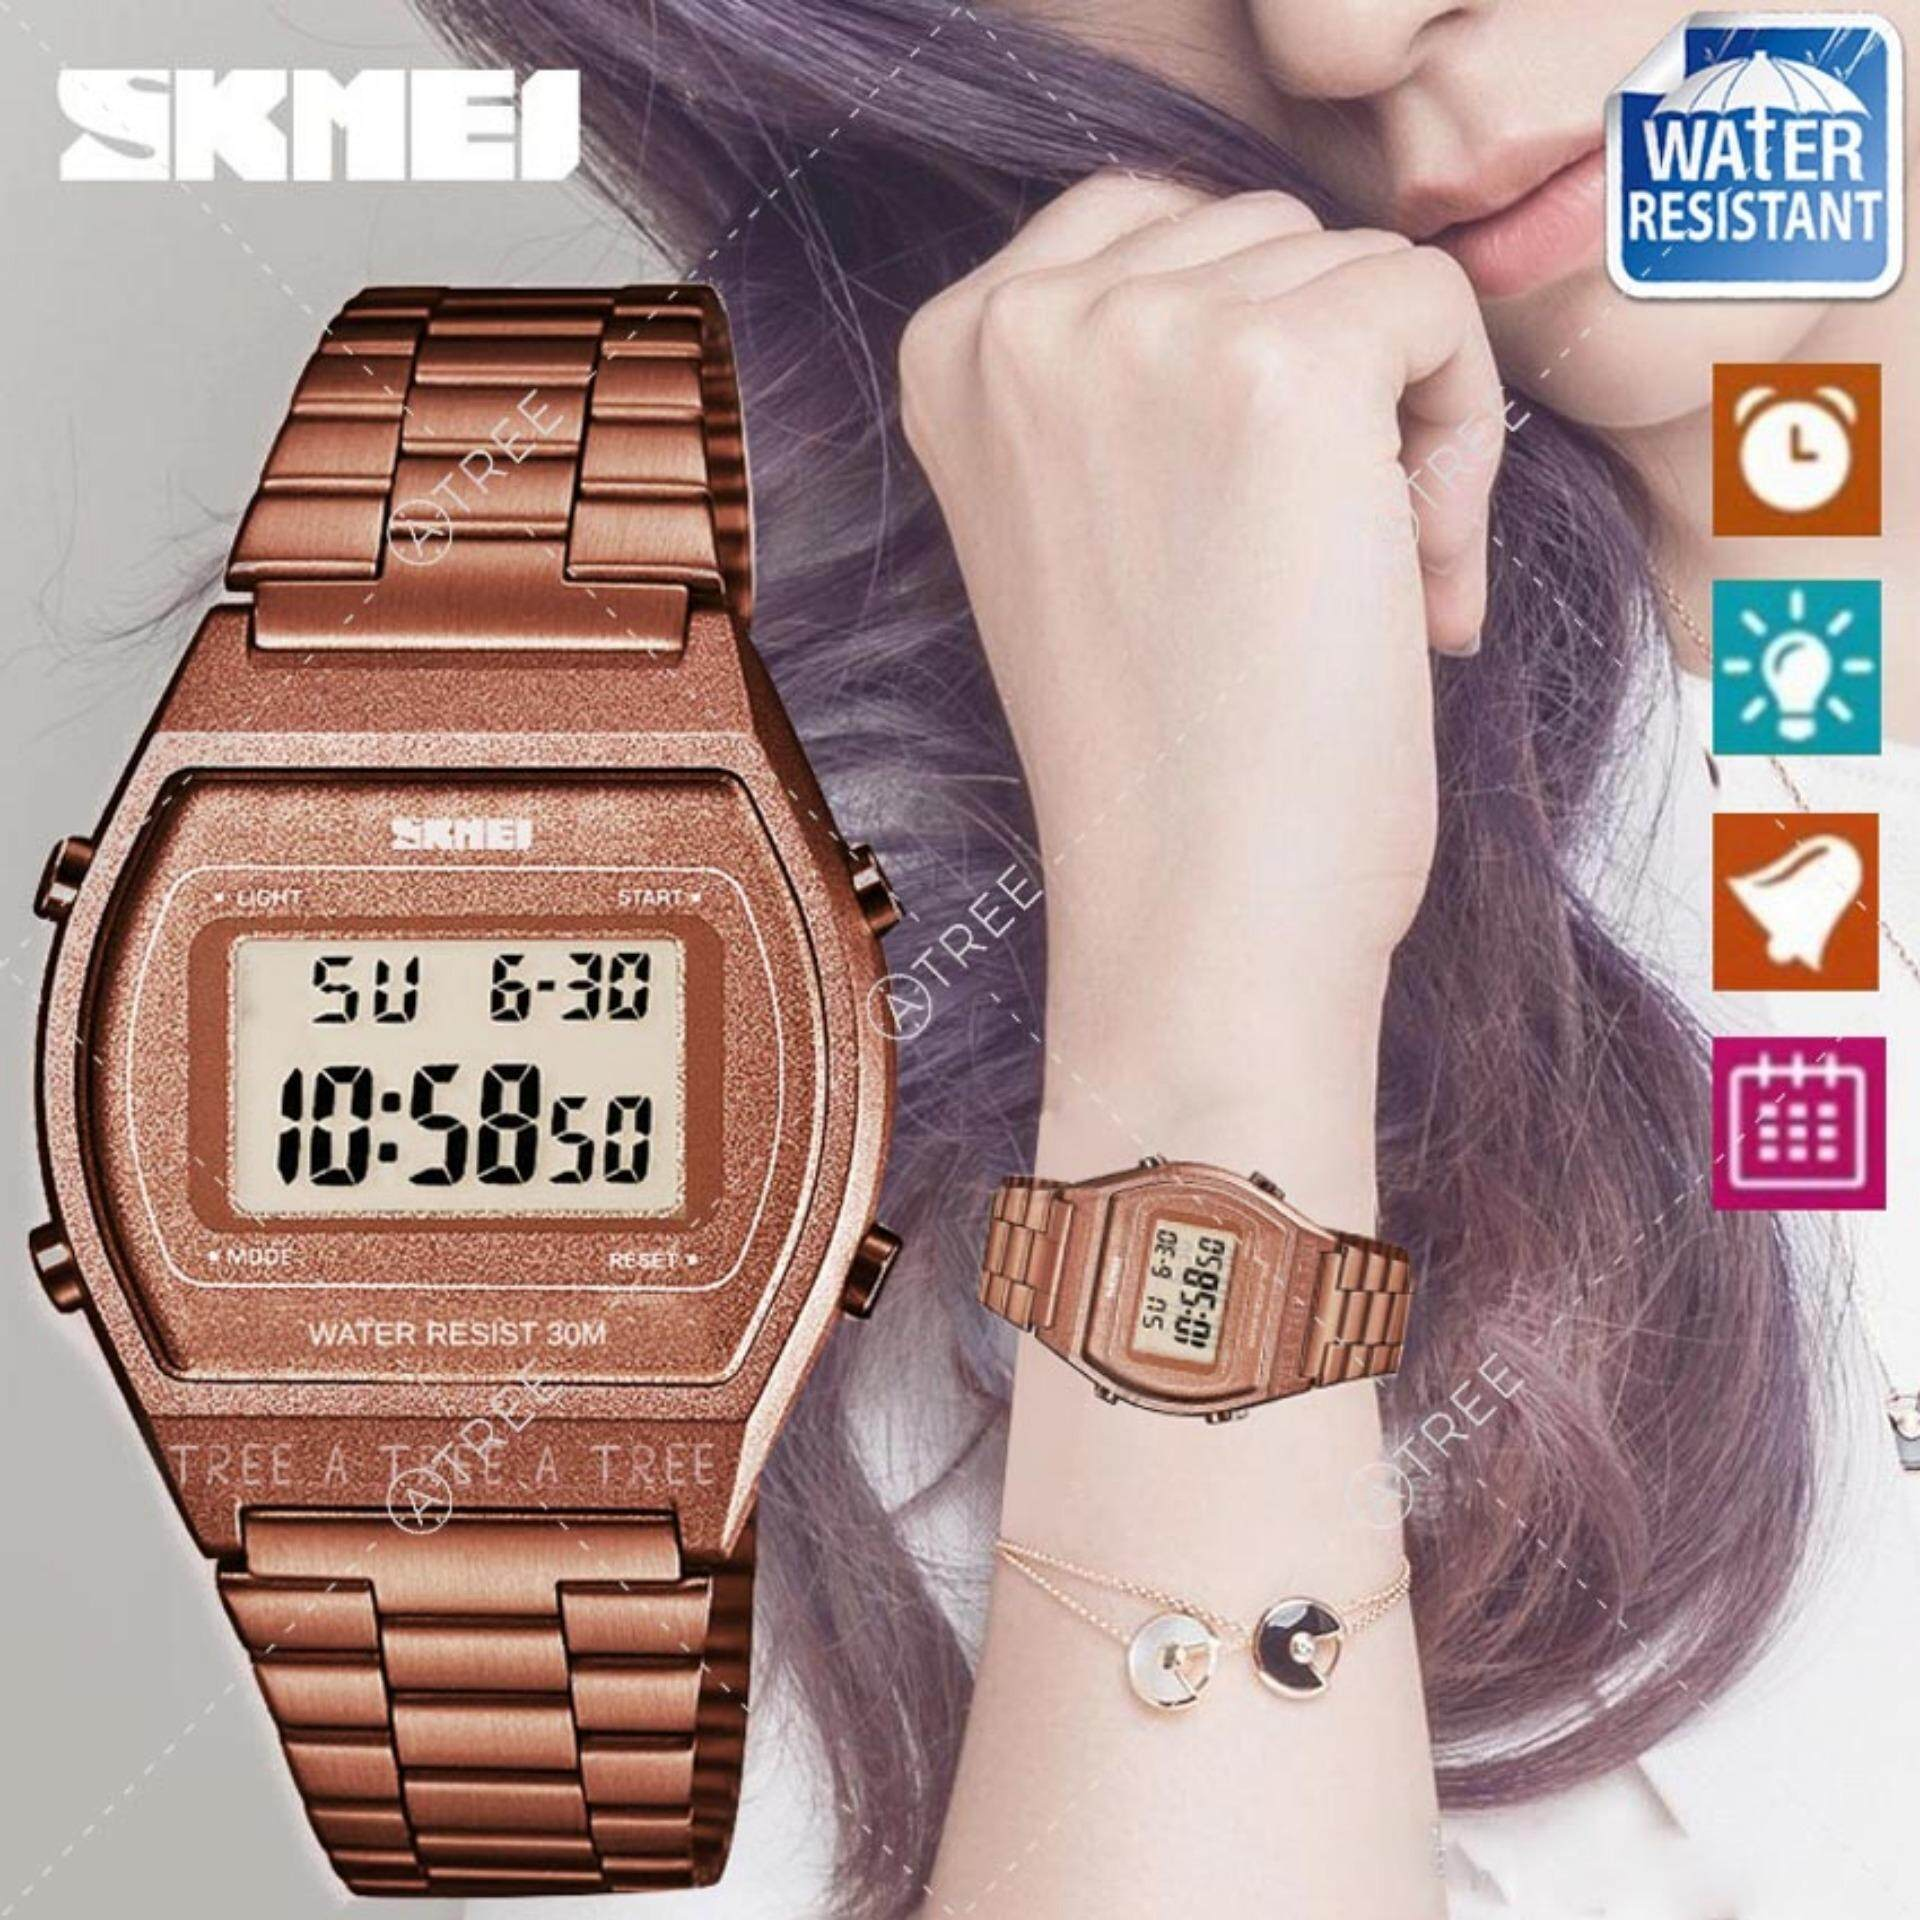 SKMEI Women Fashion Watches Digital Waterproof Watch LED Stainless Steel Time Alarm Light Wristwatch 1328 Malaysia